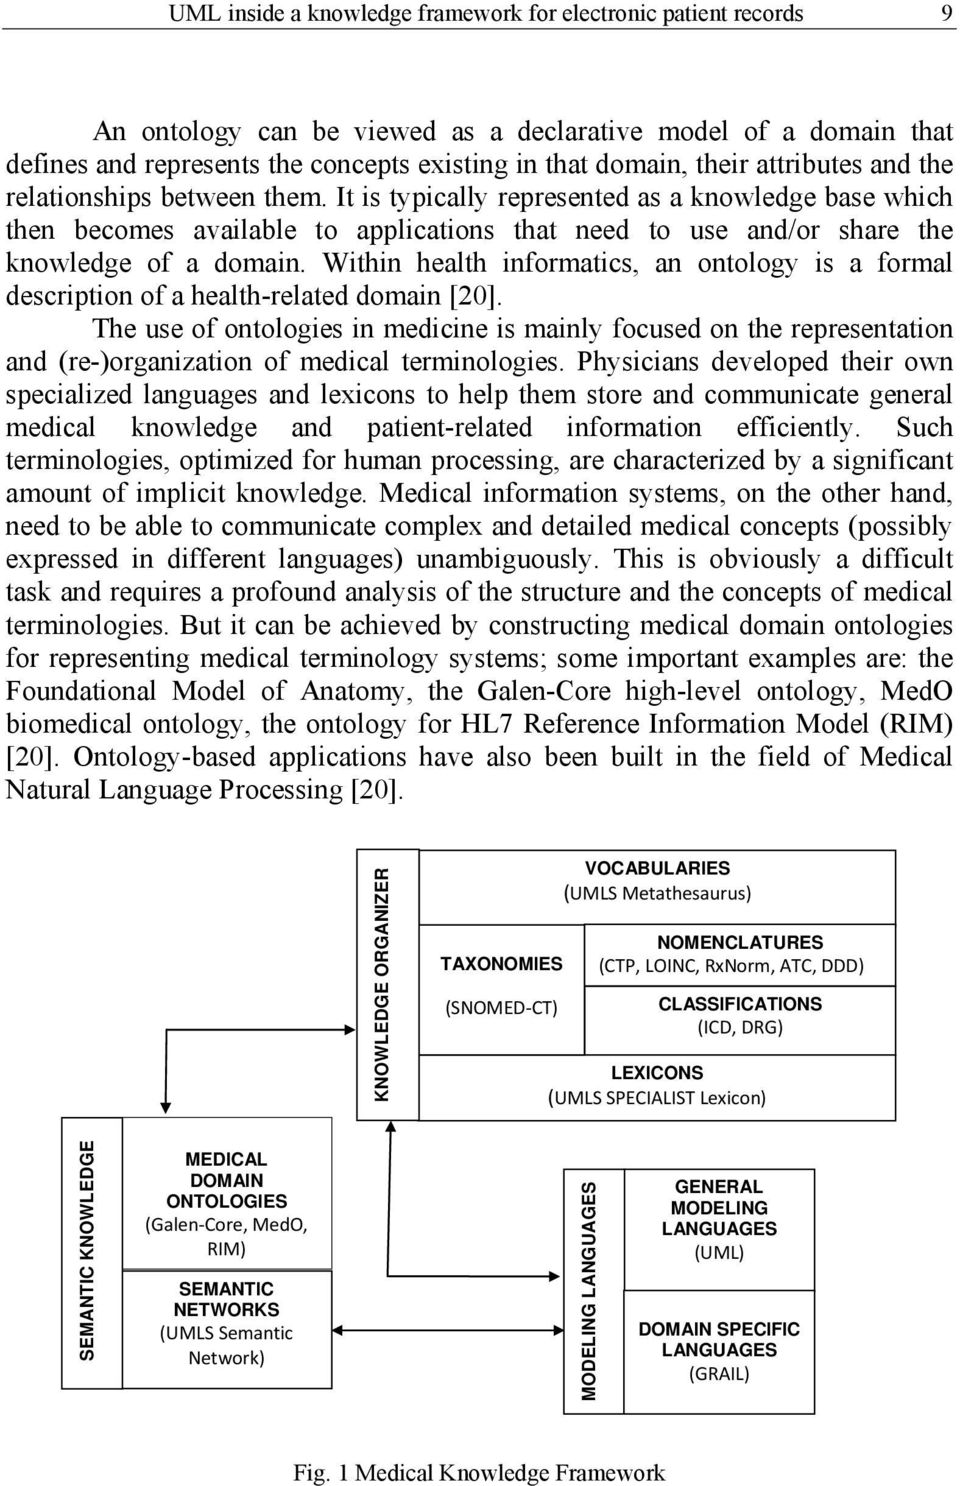 Within health informatics, an ontology is a formal description of a health-related domain [20].